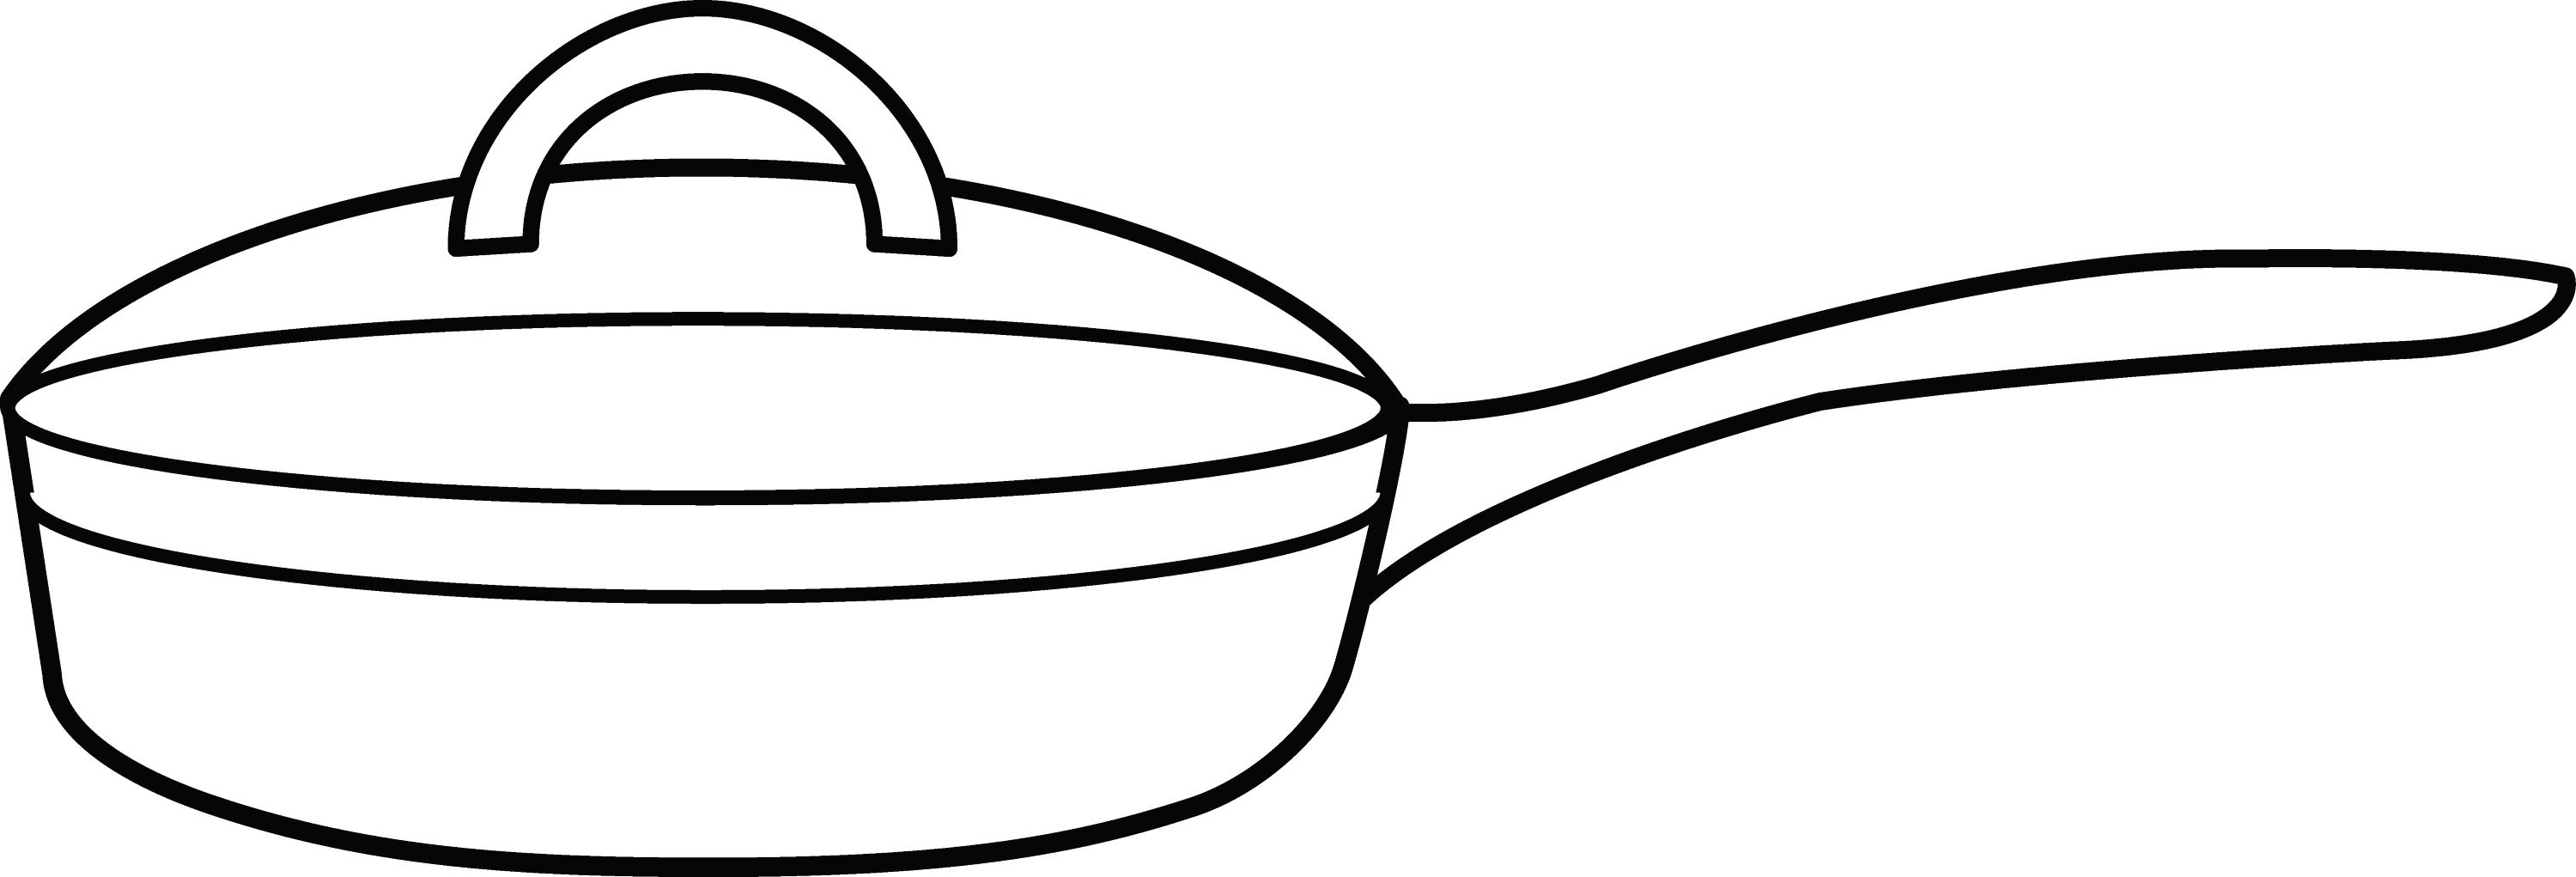 Frying Pan Coloring Page Free Clip Art Coloring Pages Of Pan